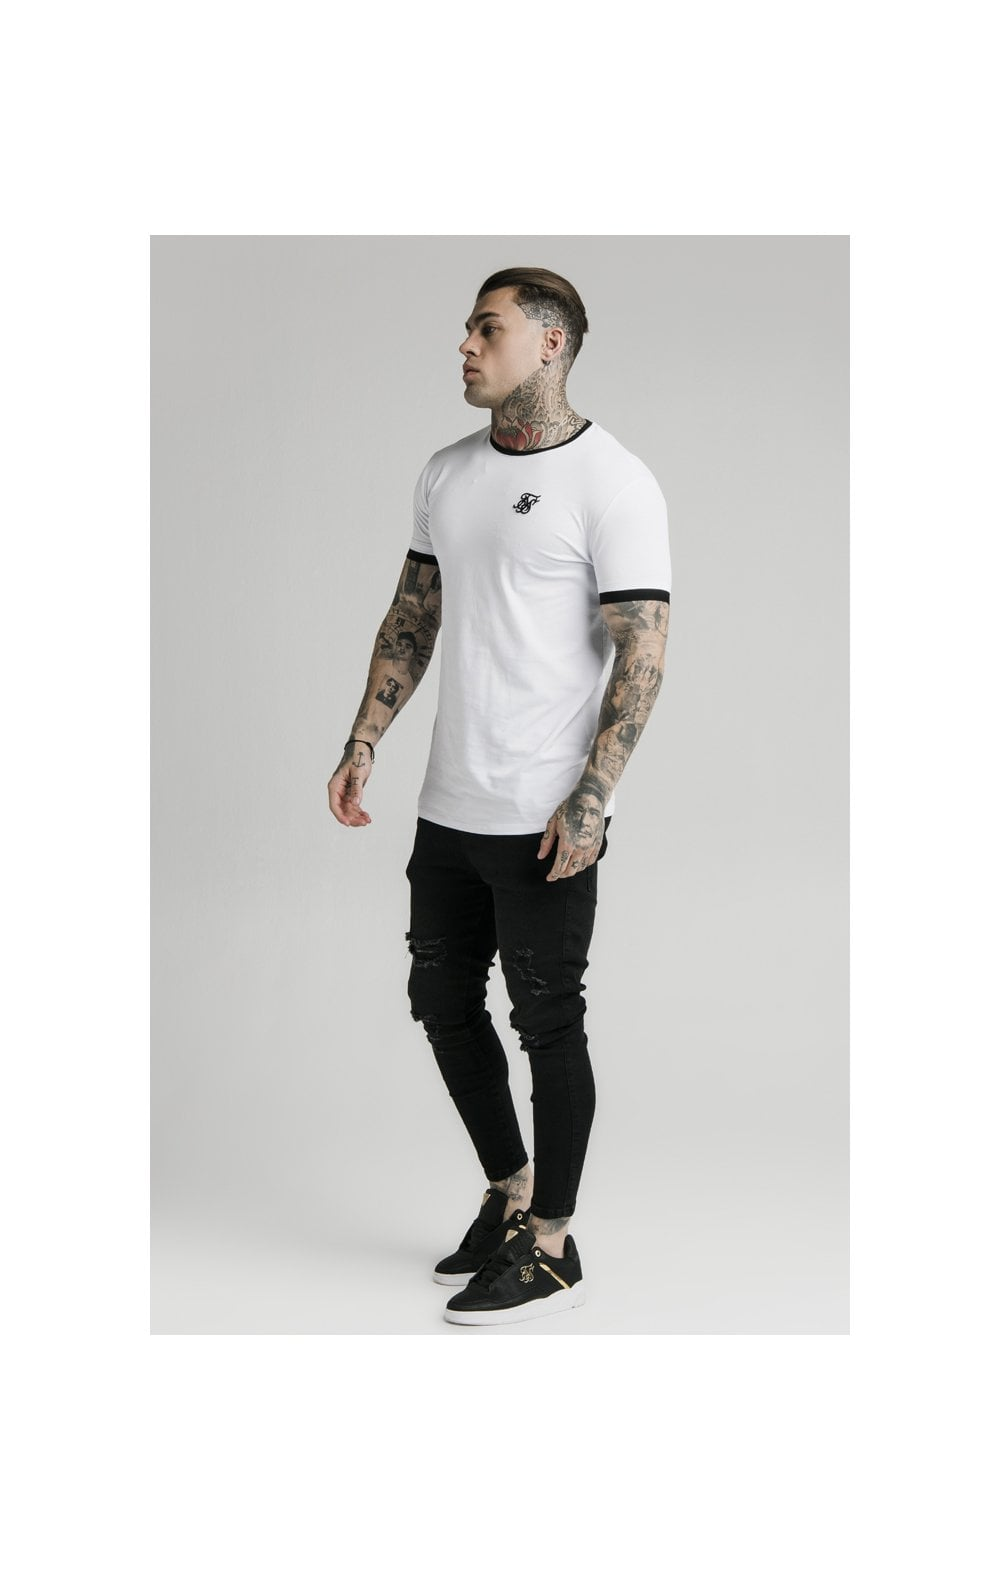 SikSilk S/S Inset Straight Hem Ringer Gym Tee – White (2)